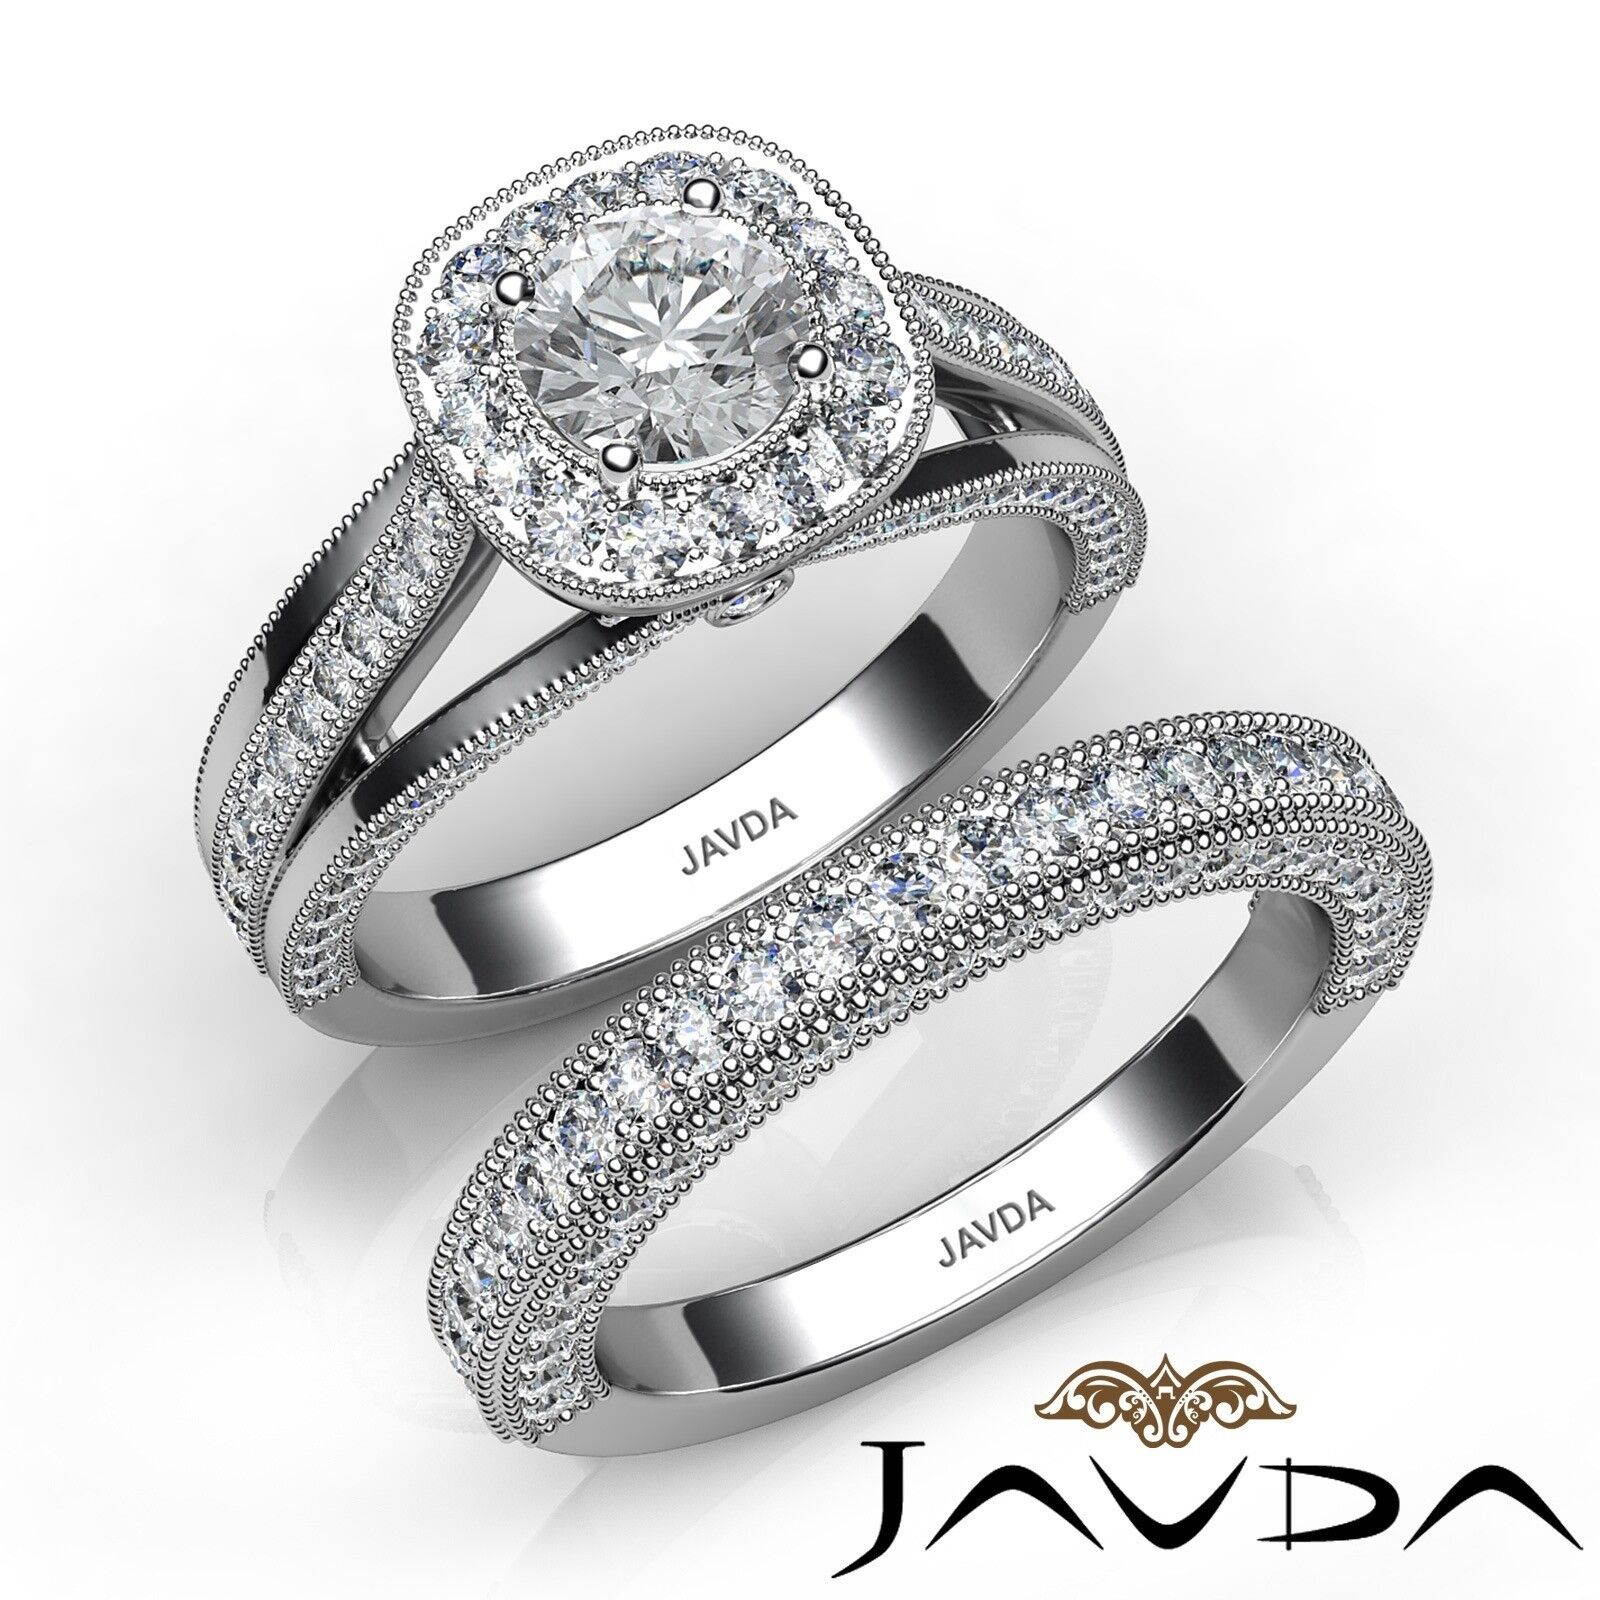 2.24ctw Milgrain Bridal Set Halo Round Diamond Engagement Ring GIA I-SI1 W Gold